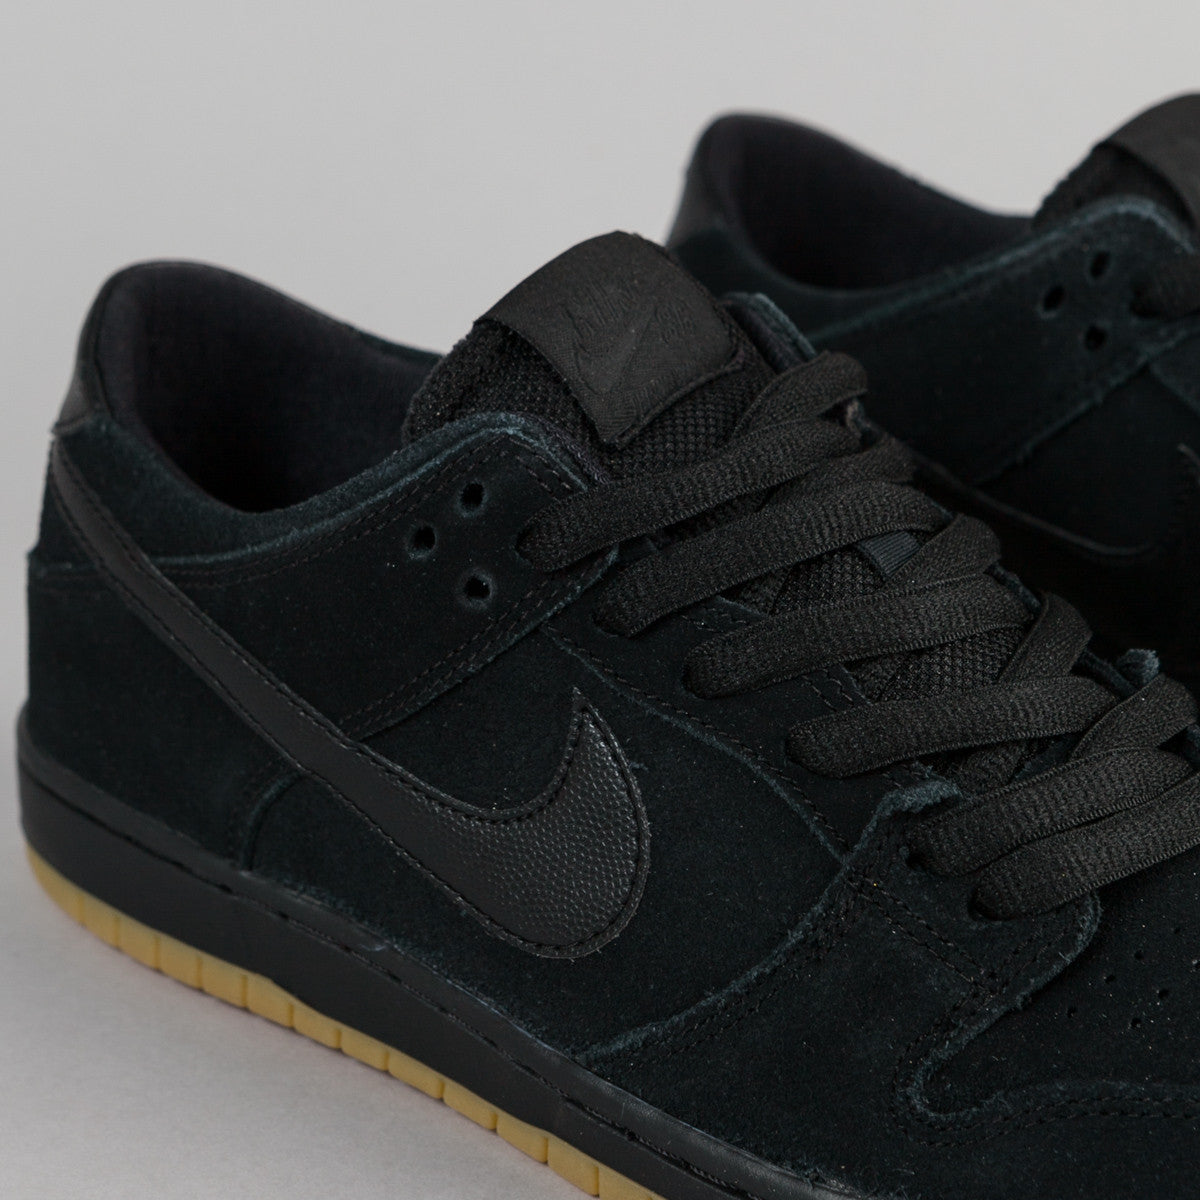 Nike SB Dunk Low Pro Ishod Wair Shoes - Black / Black - Gum Light Brown